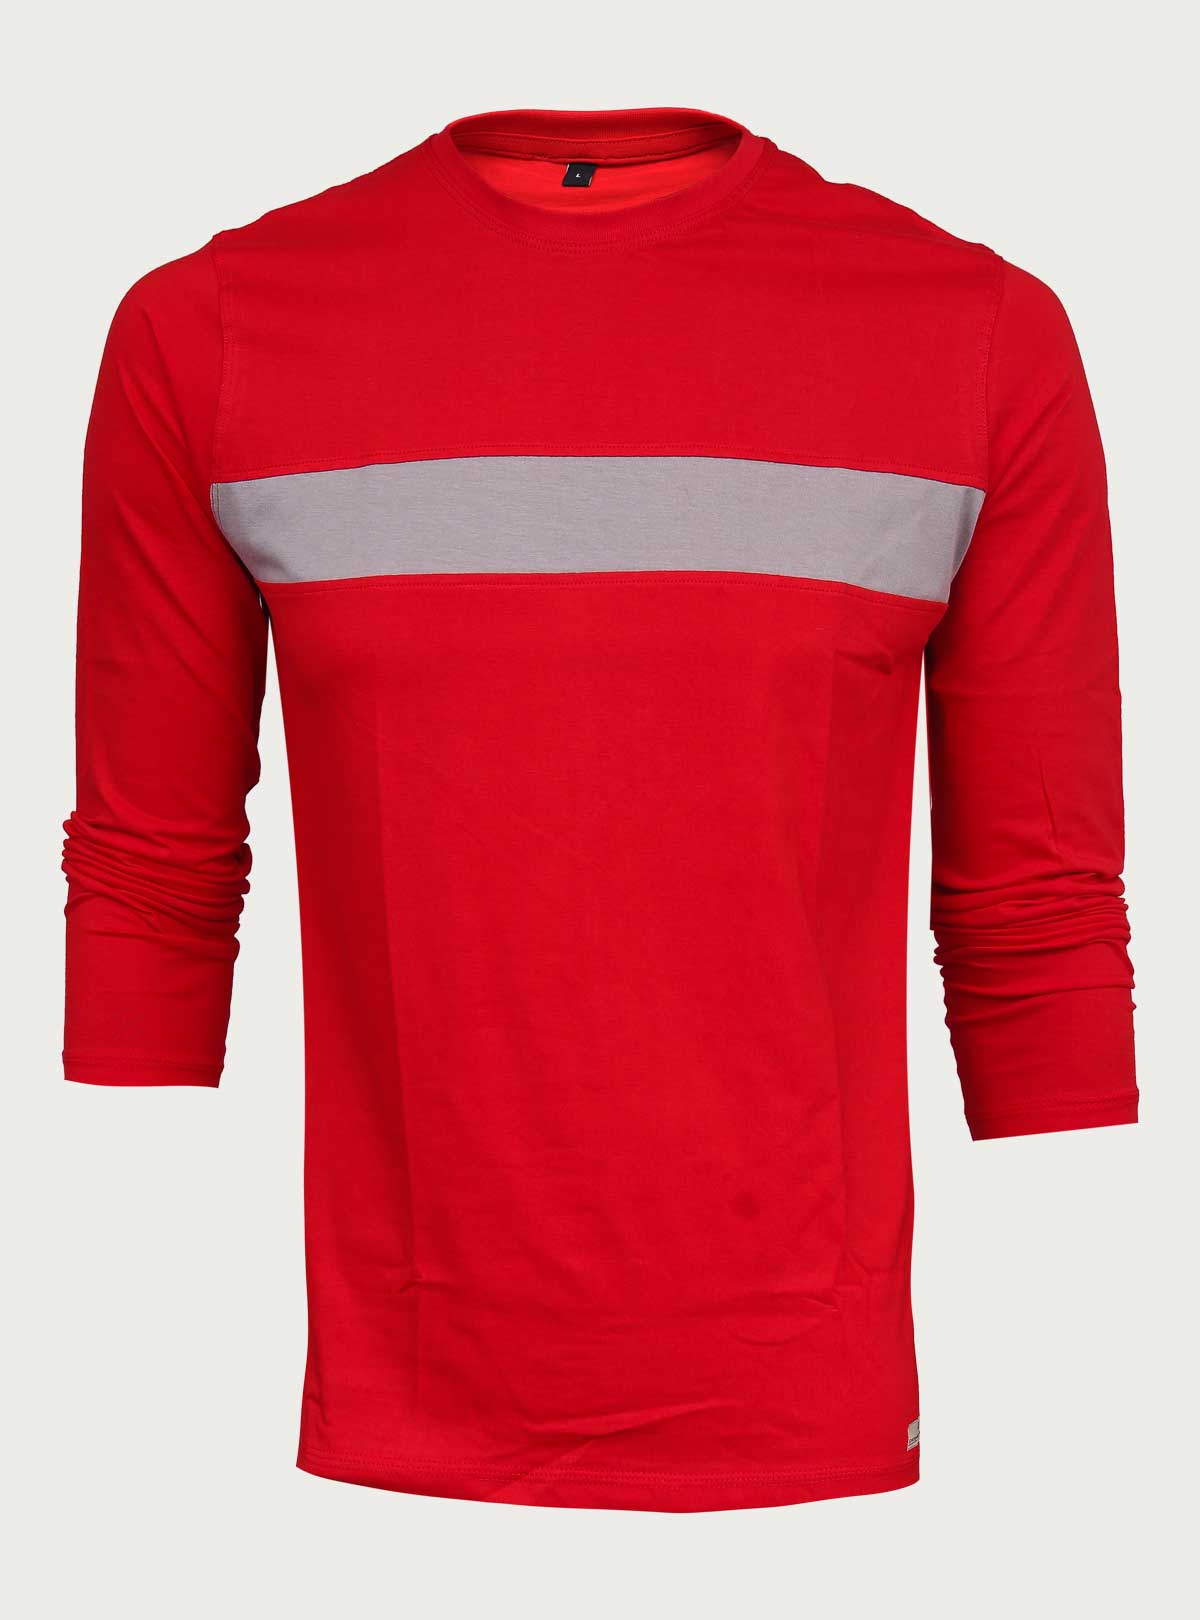 Full Sleeve T-Shirt By Swapon's World